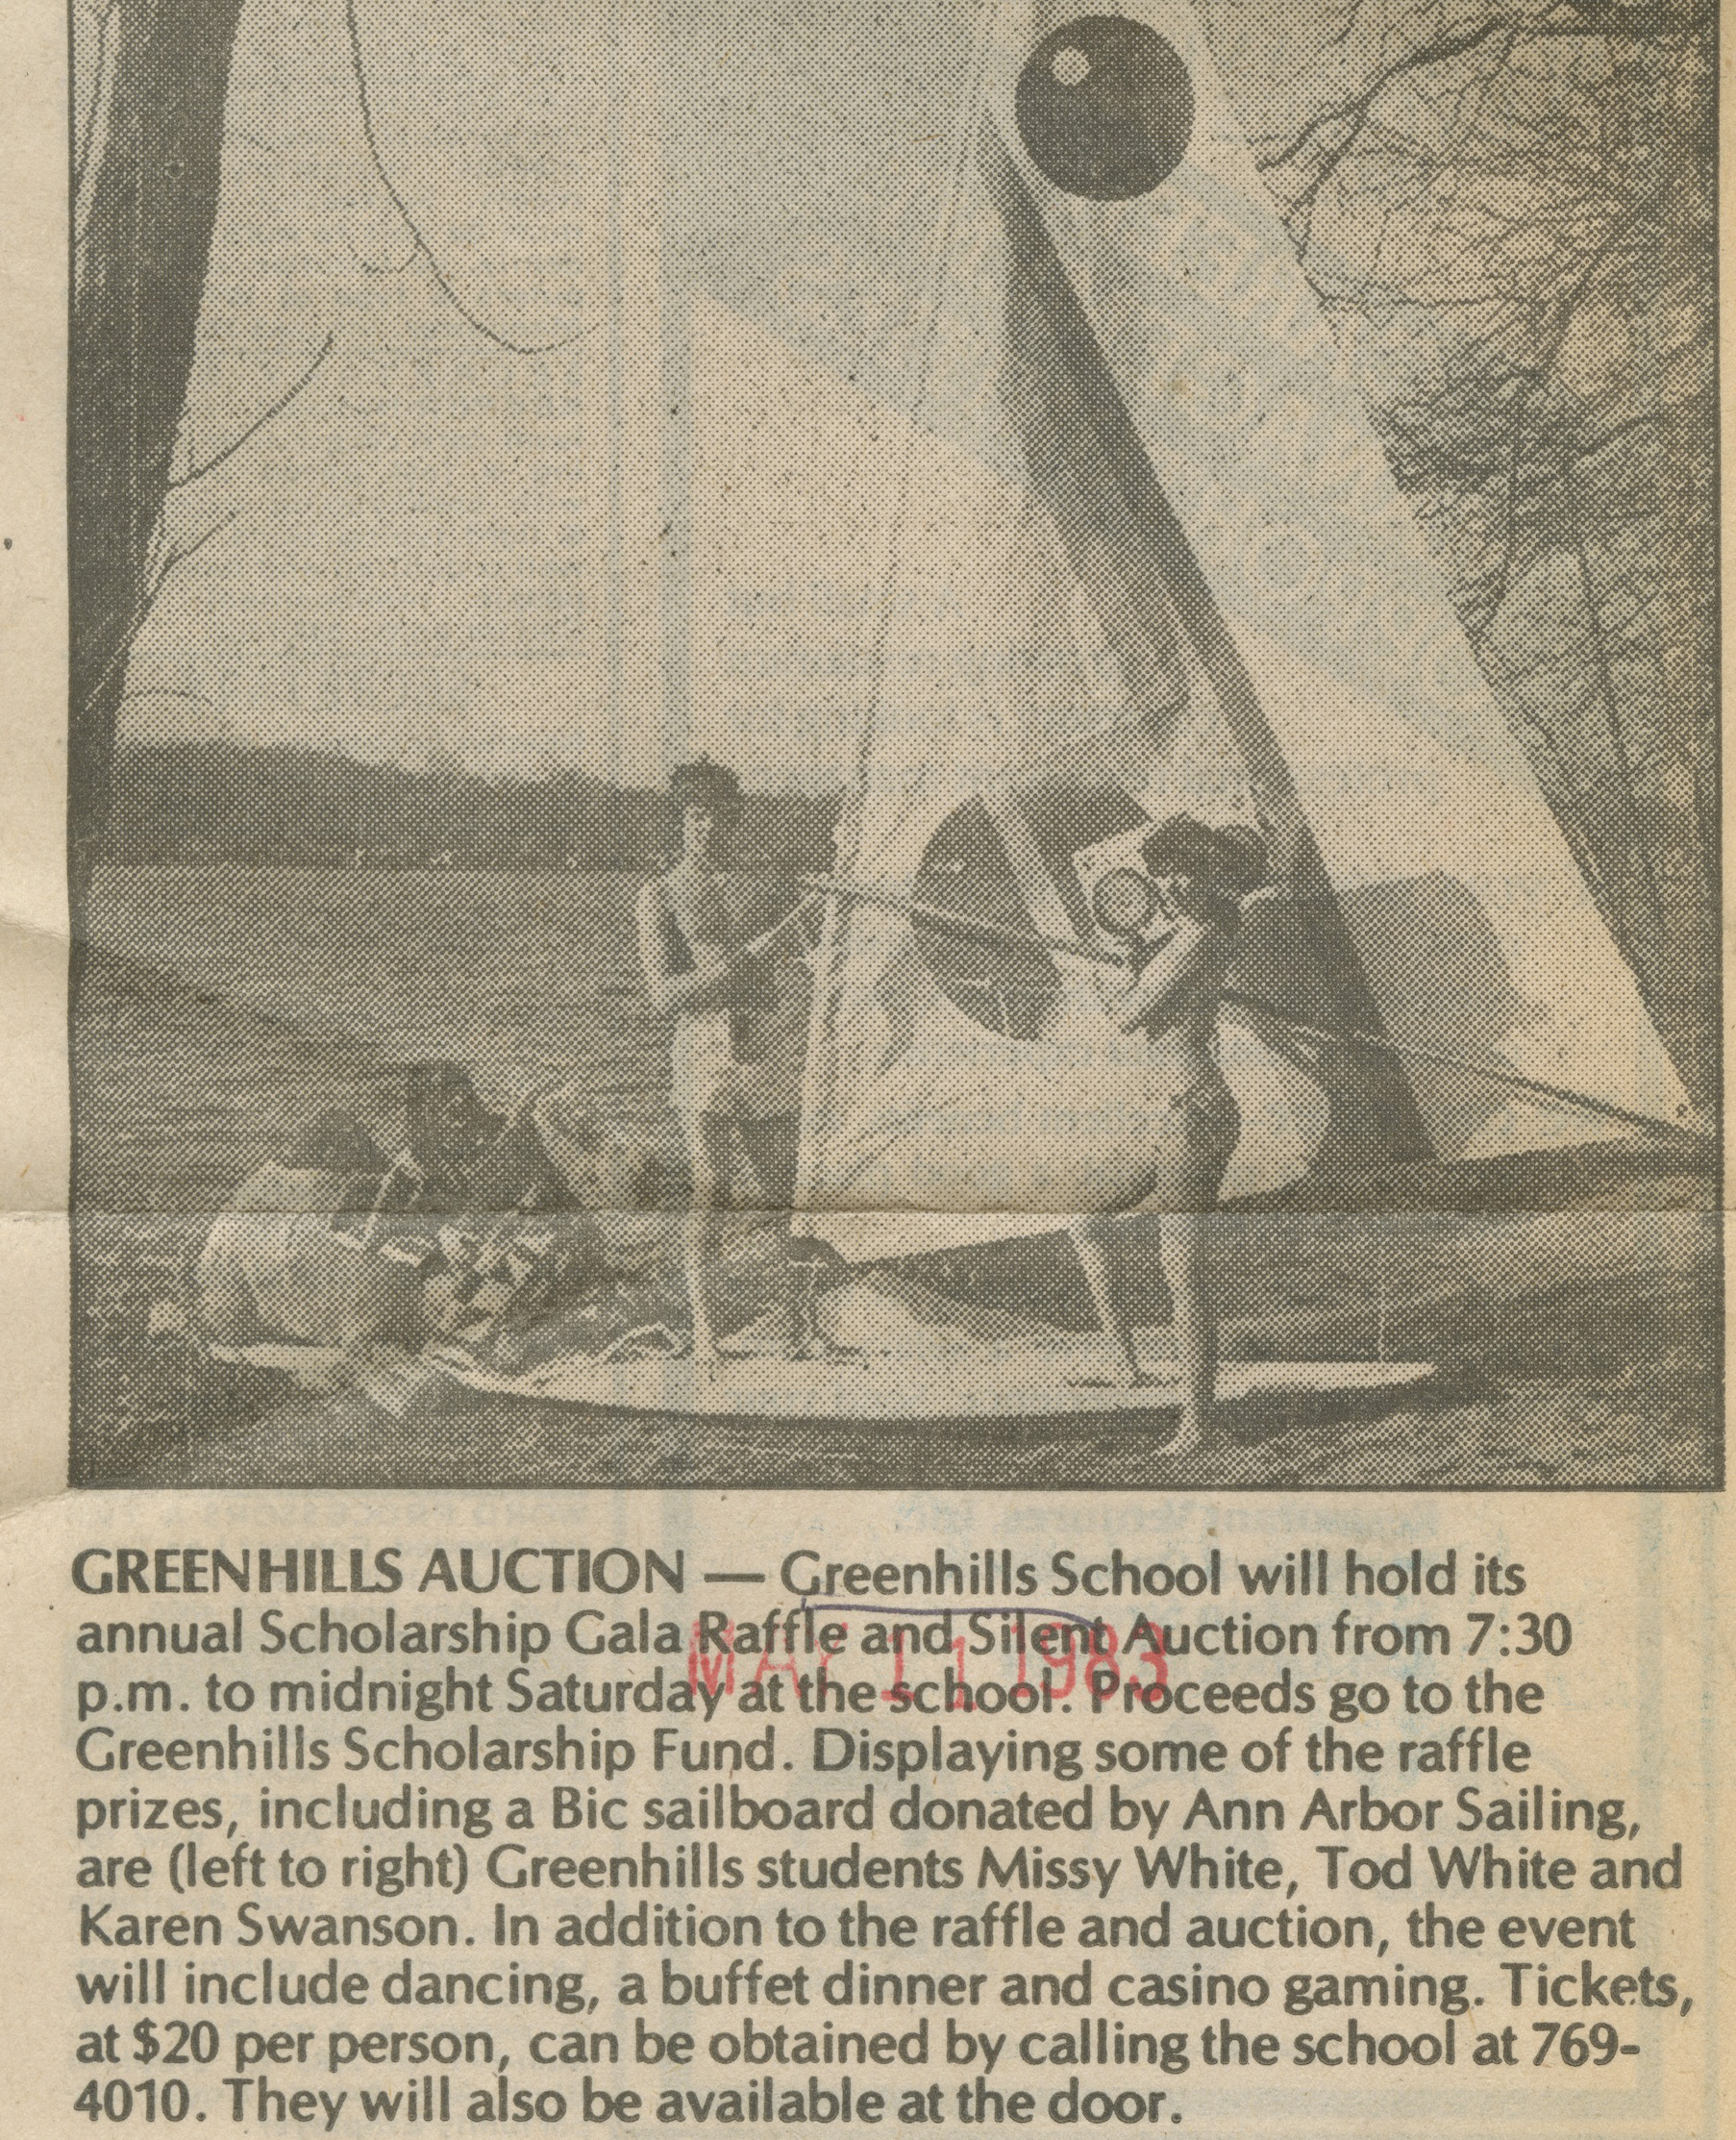 Greenhills Auction image